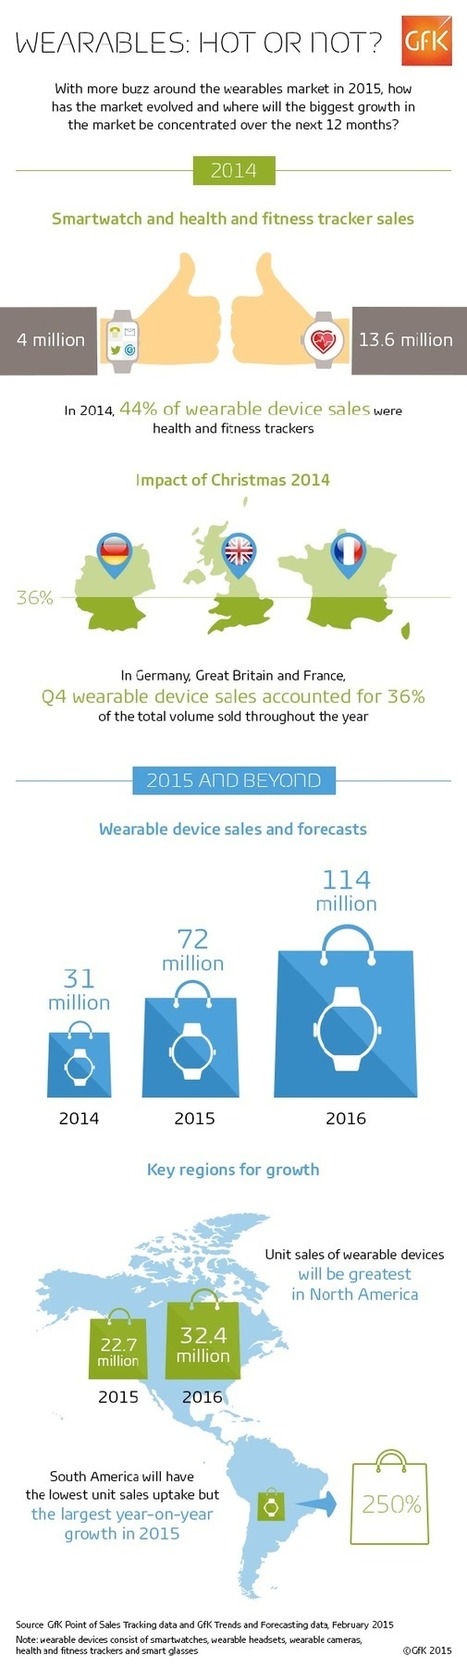 Infographie : le marché mondial des wearables va plus que doubler en 2015 | Clic France | Scoop.it